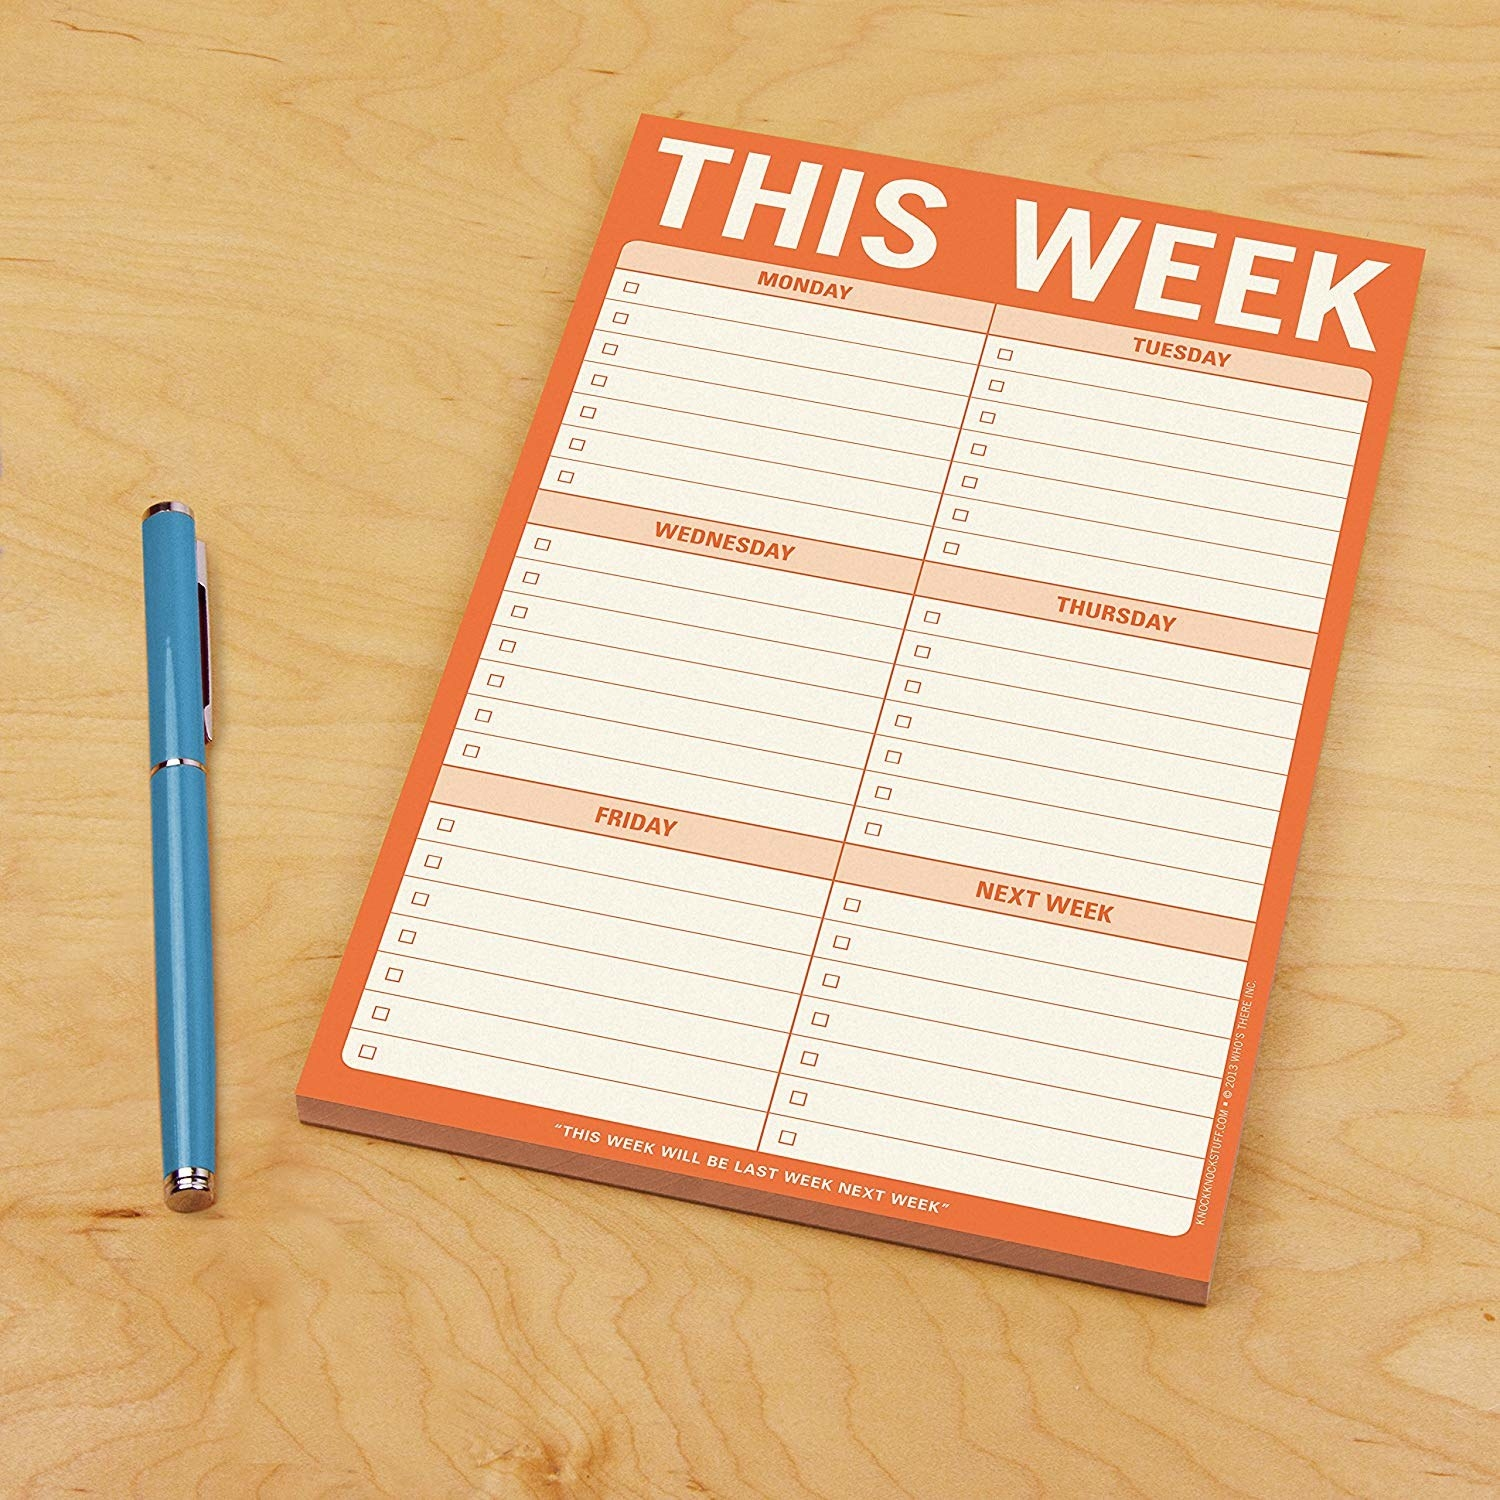 The notepad with lines for writing tasks for monday-friday and next week